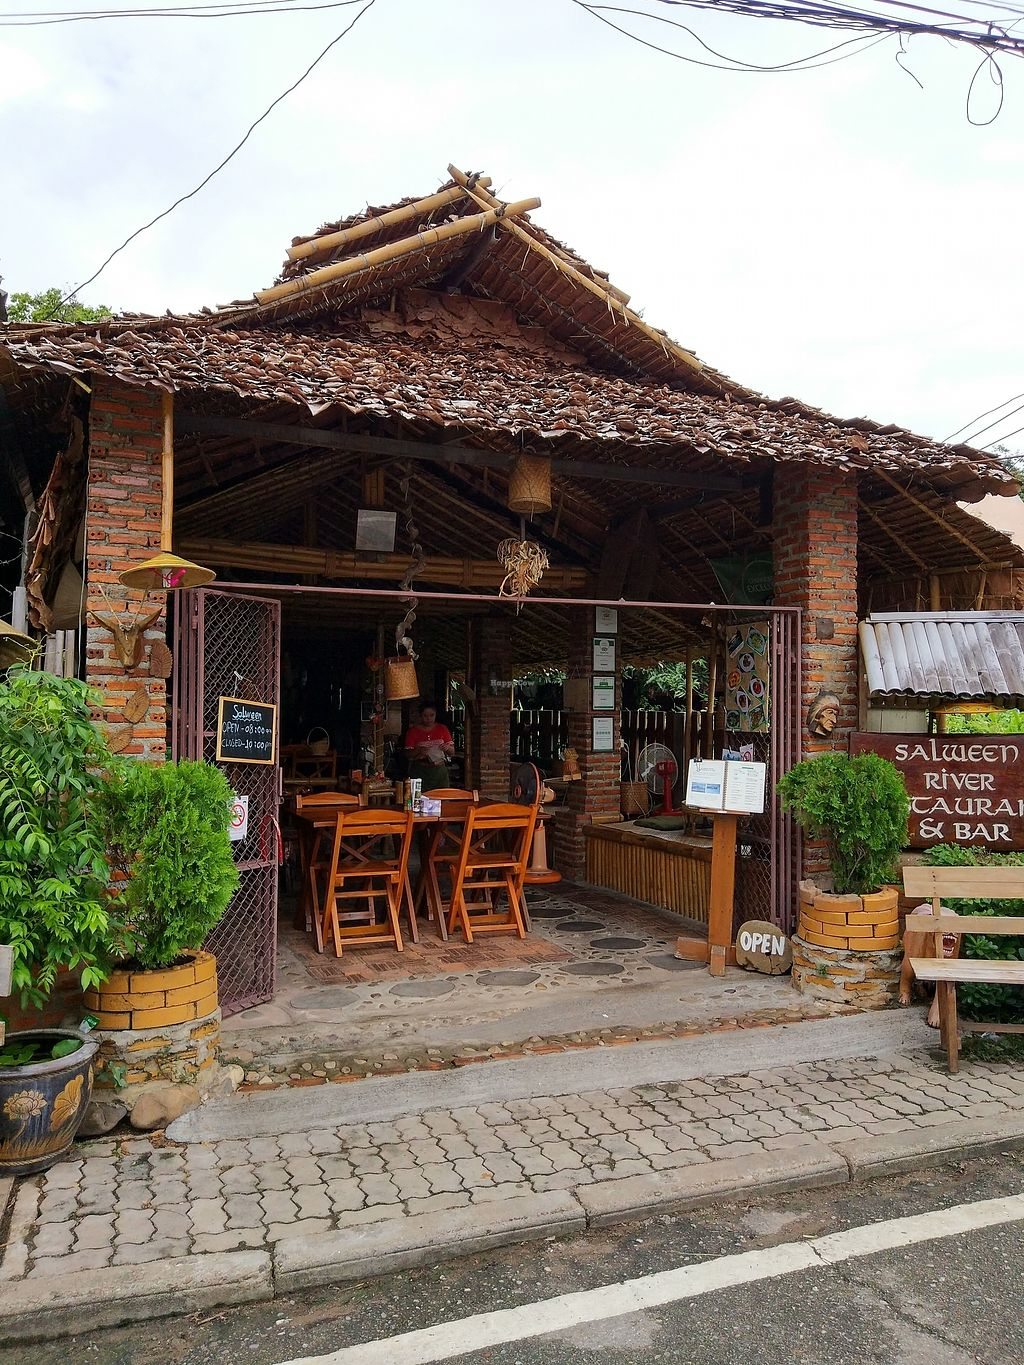 """Photo of Salween River Restaurant  by <a href=""""/members/profile/lovetheanimals"""">lovetheanimals</a> <br/>outside <br/> July 10, 2017  - <a href='/contact/abuse/image/95736/278799'>Report</a>"""